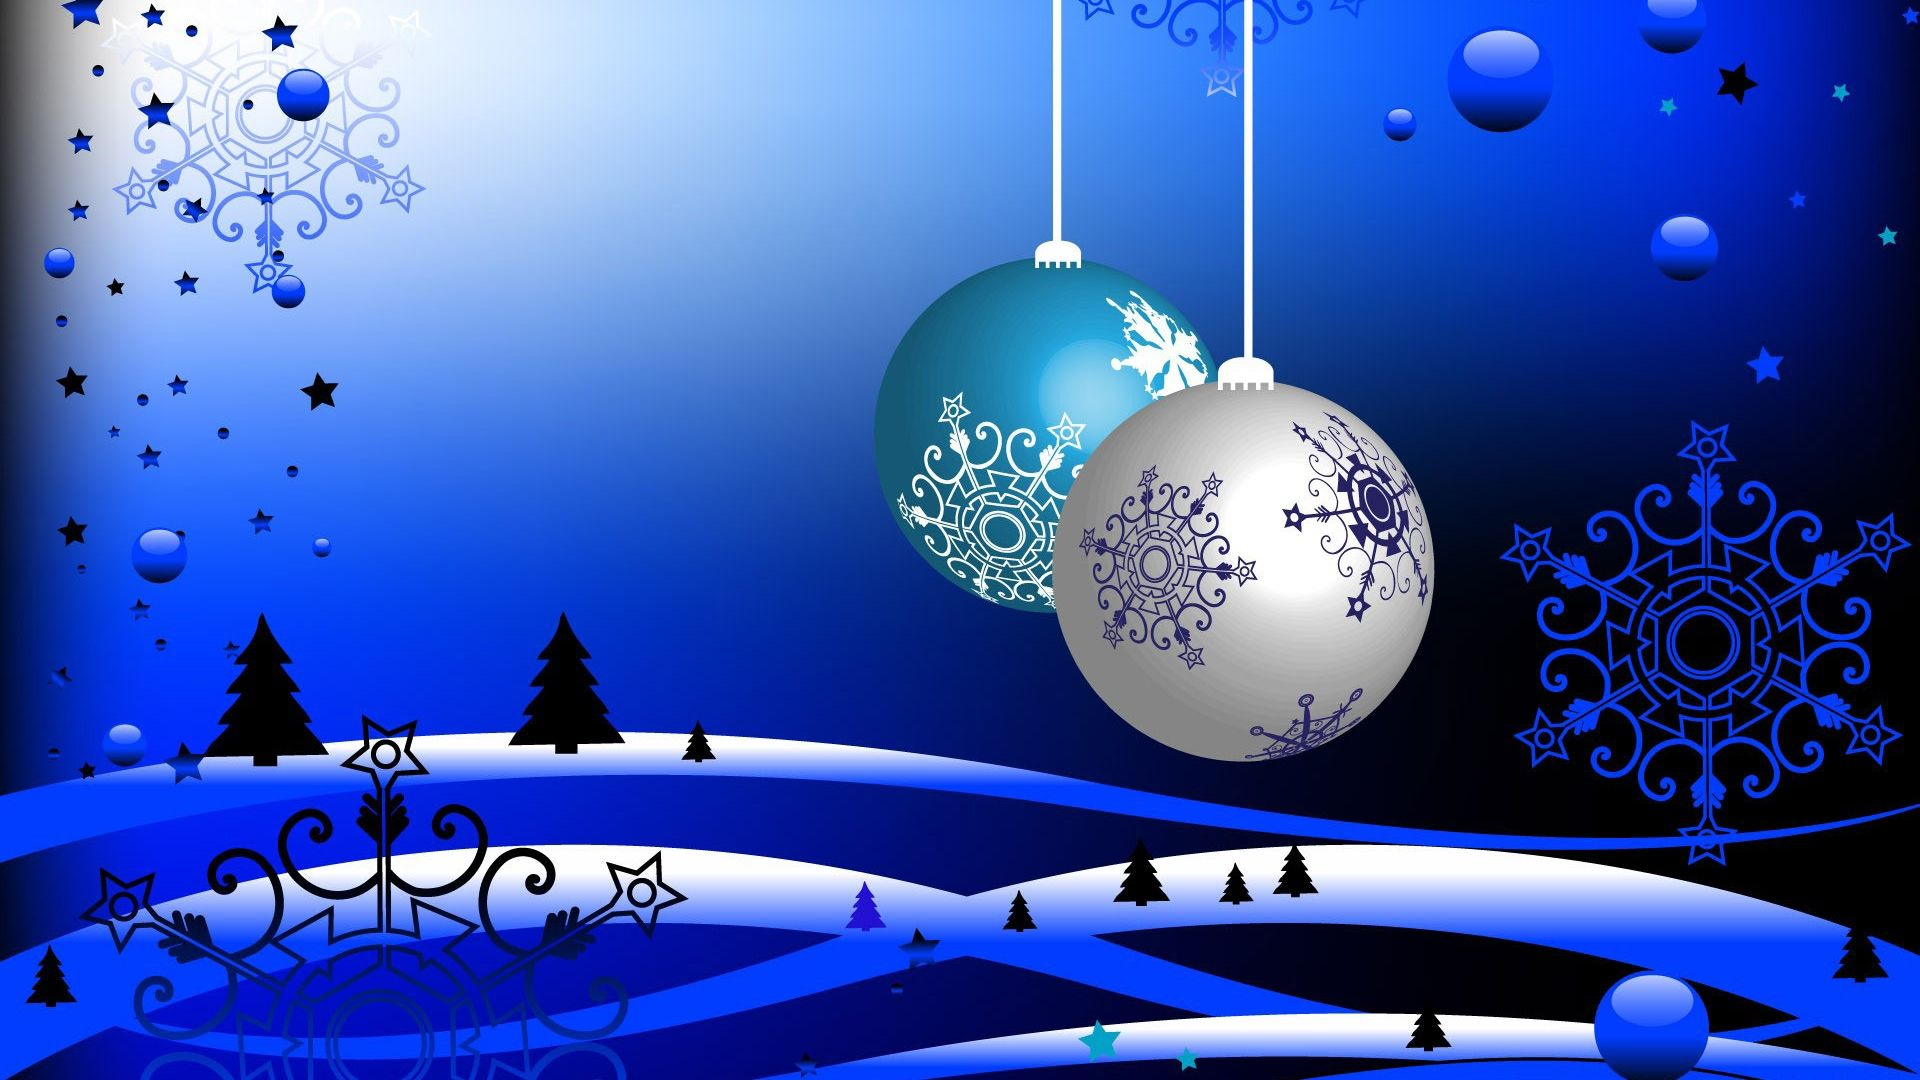 Animated Christmas Wallpapers Make Your Desktop Beautiful Christmas Wallpaper Hd Animated Christmas Wallpaper Holiday Wallpaper